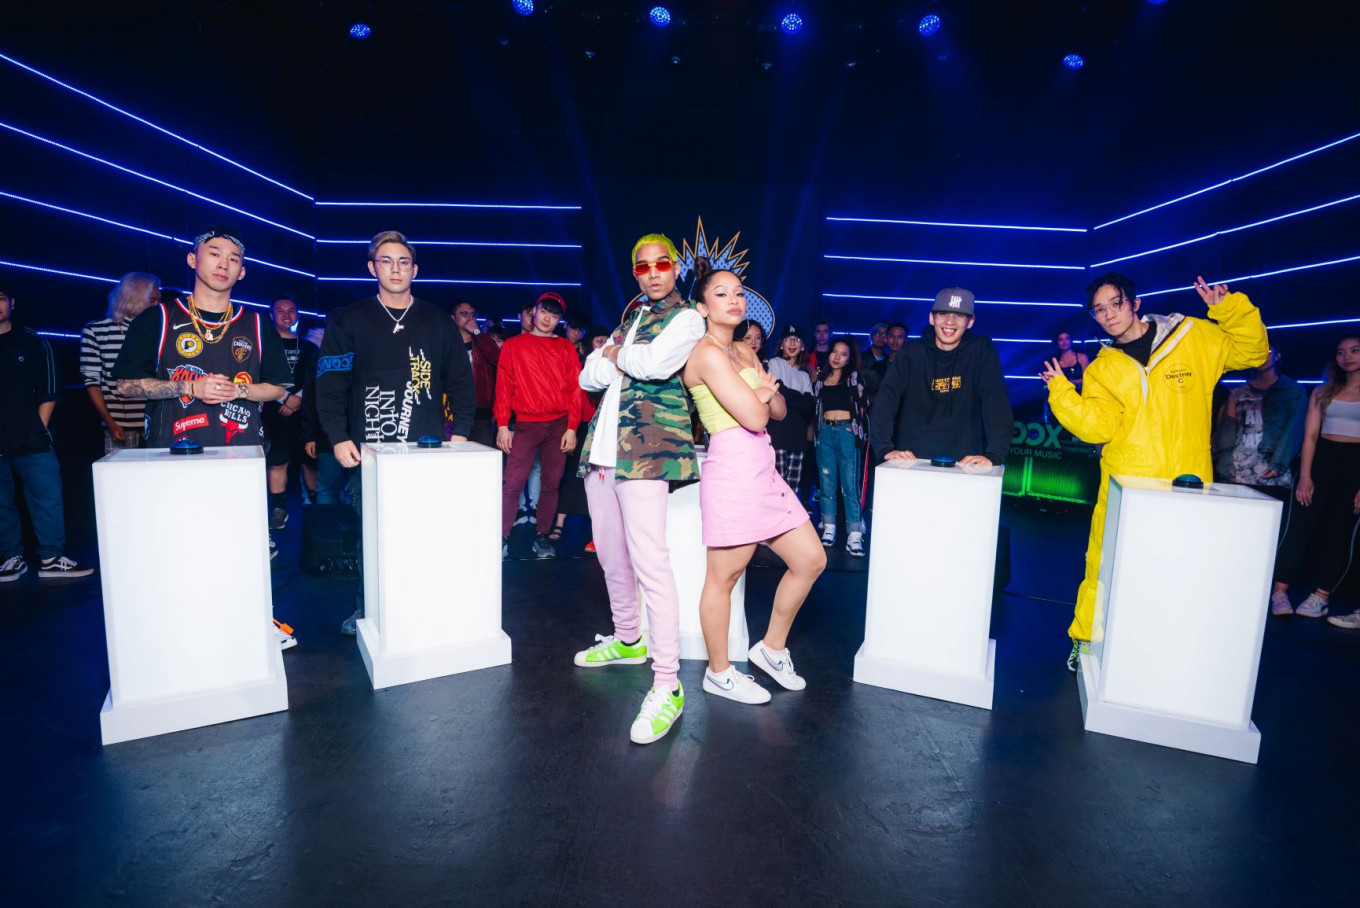 MTV Asia fires up all things hip hop with Asian twist